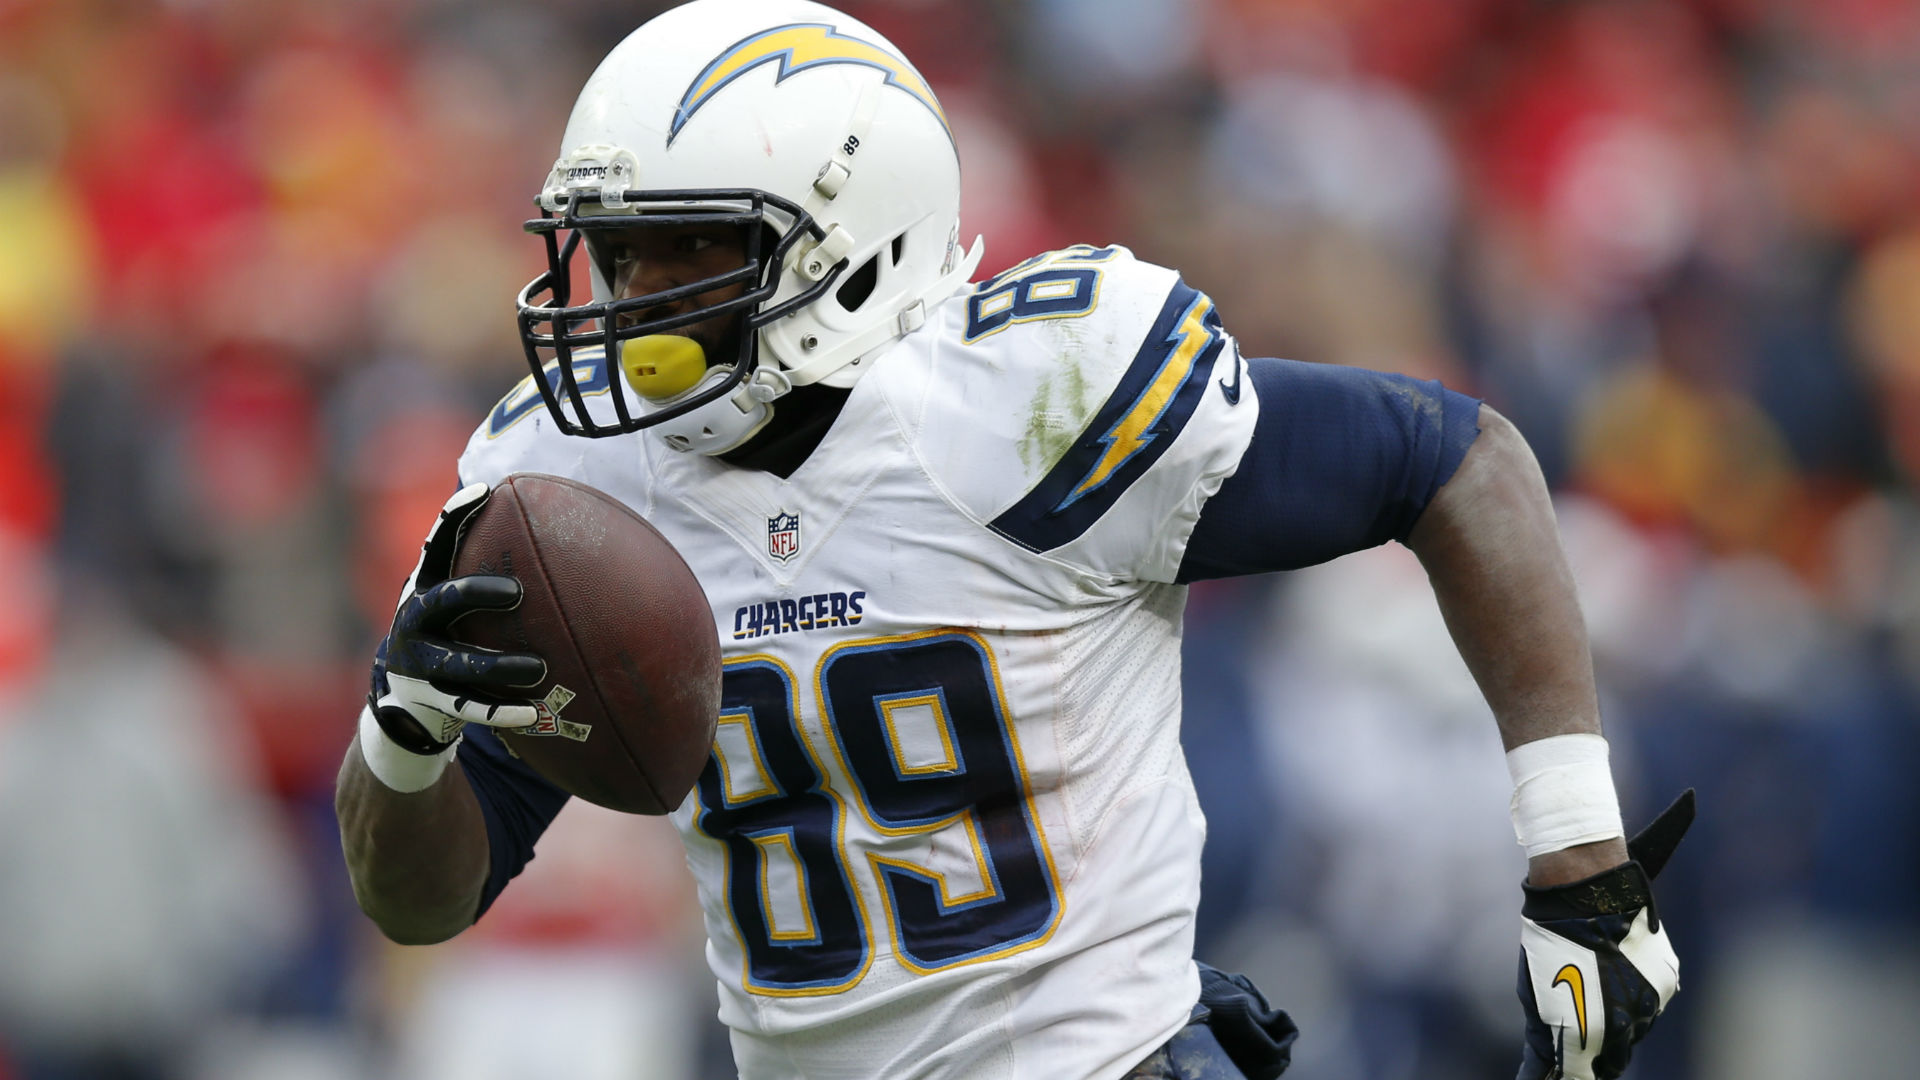 Five reasons why the Chargers should bet on Ladarius Green